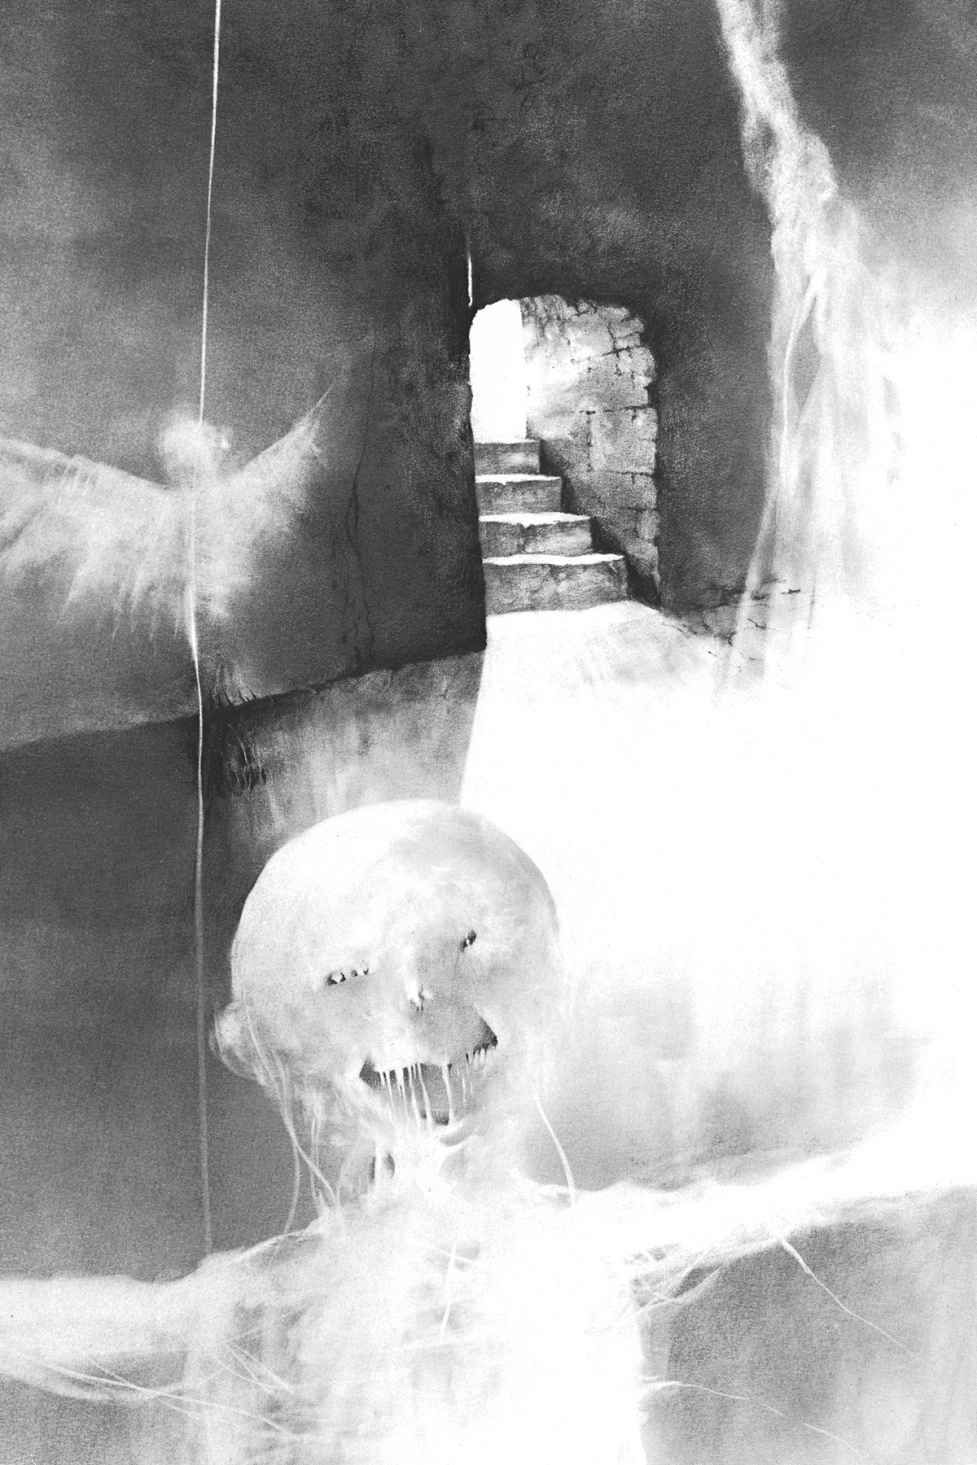 a black and white illustration of a dungeon, with an eerie all white figure with small eyes and a toothy smile in its bulbous head reaching for the viewer